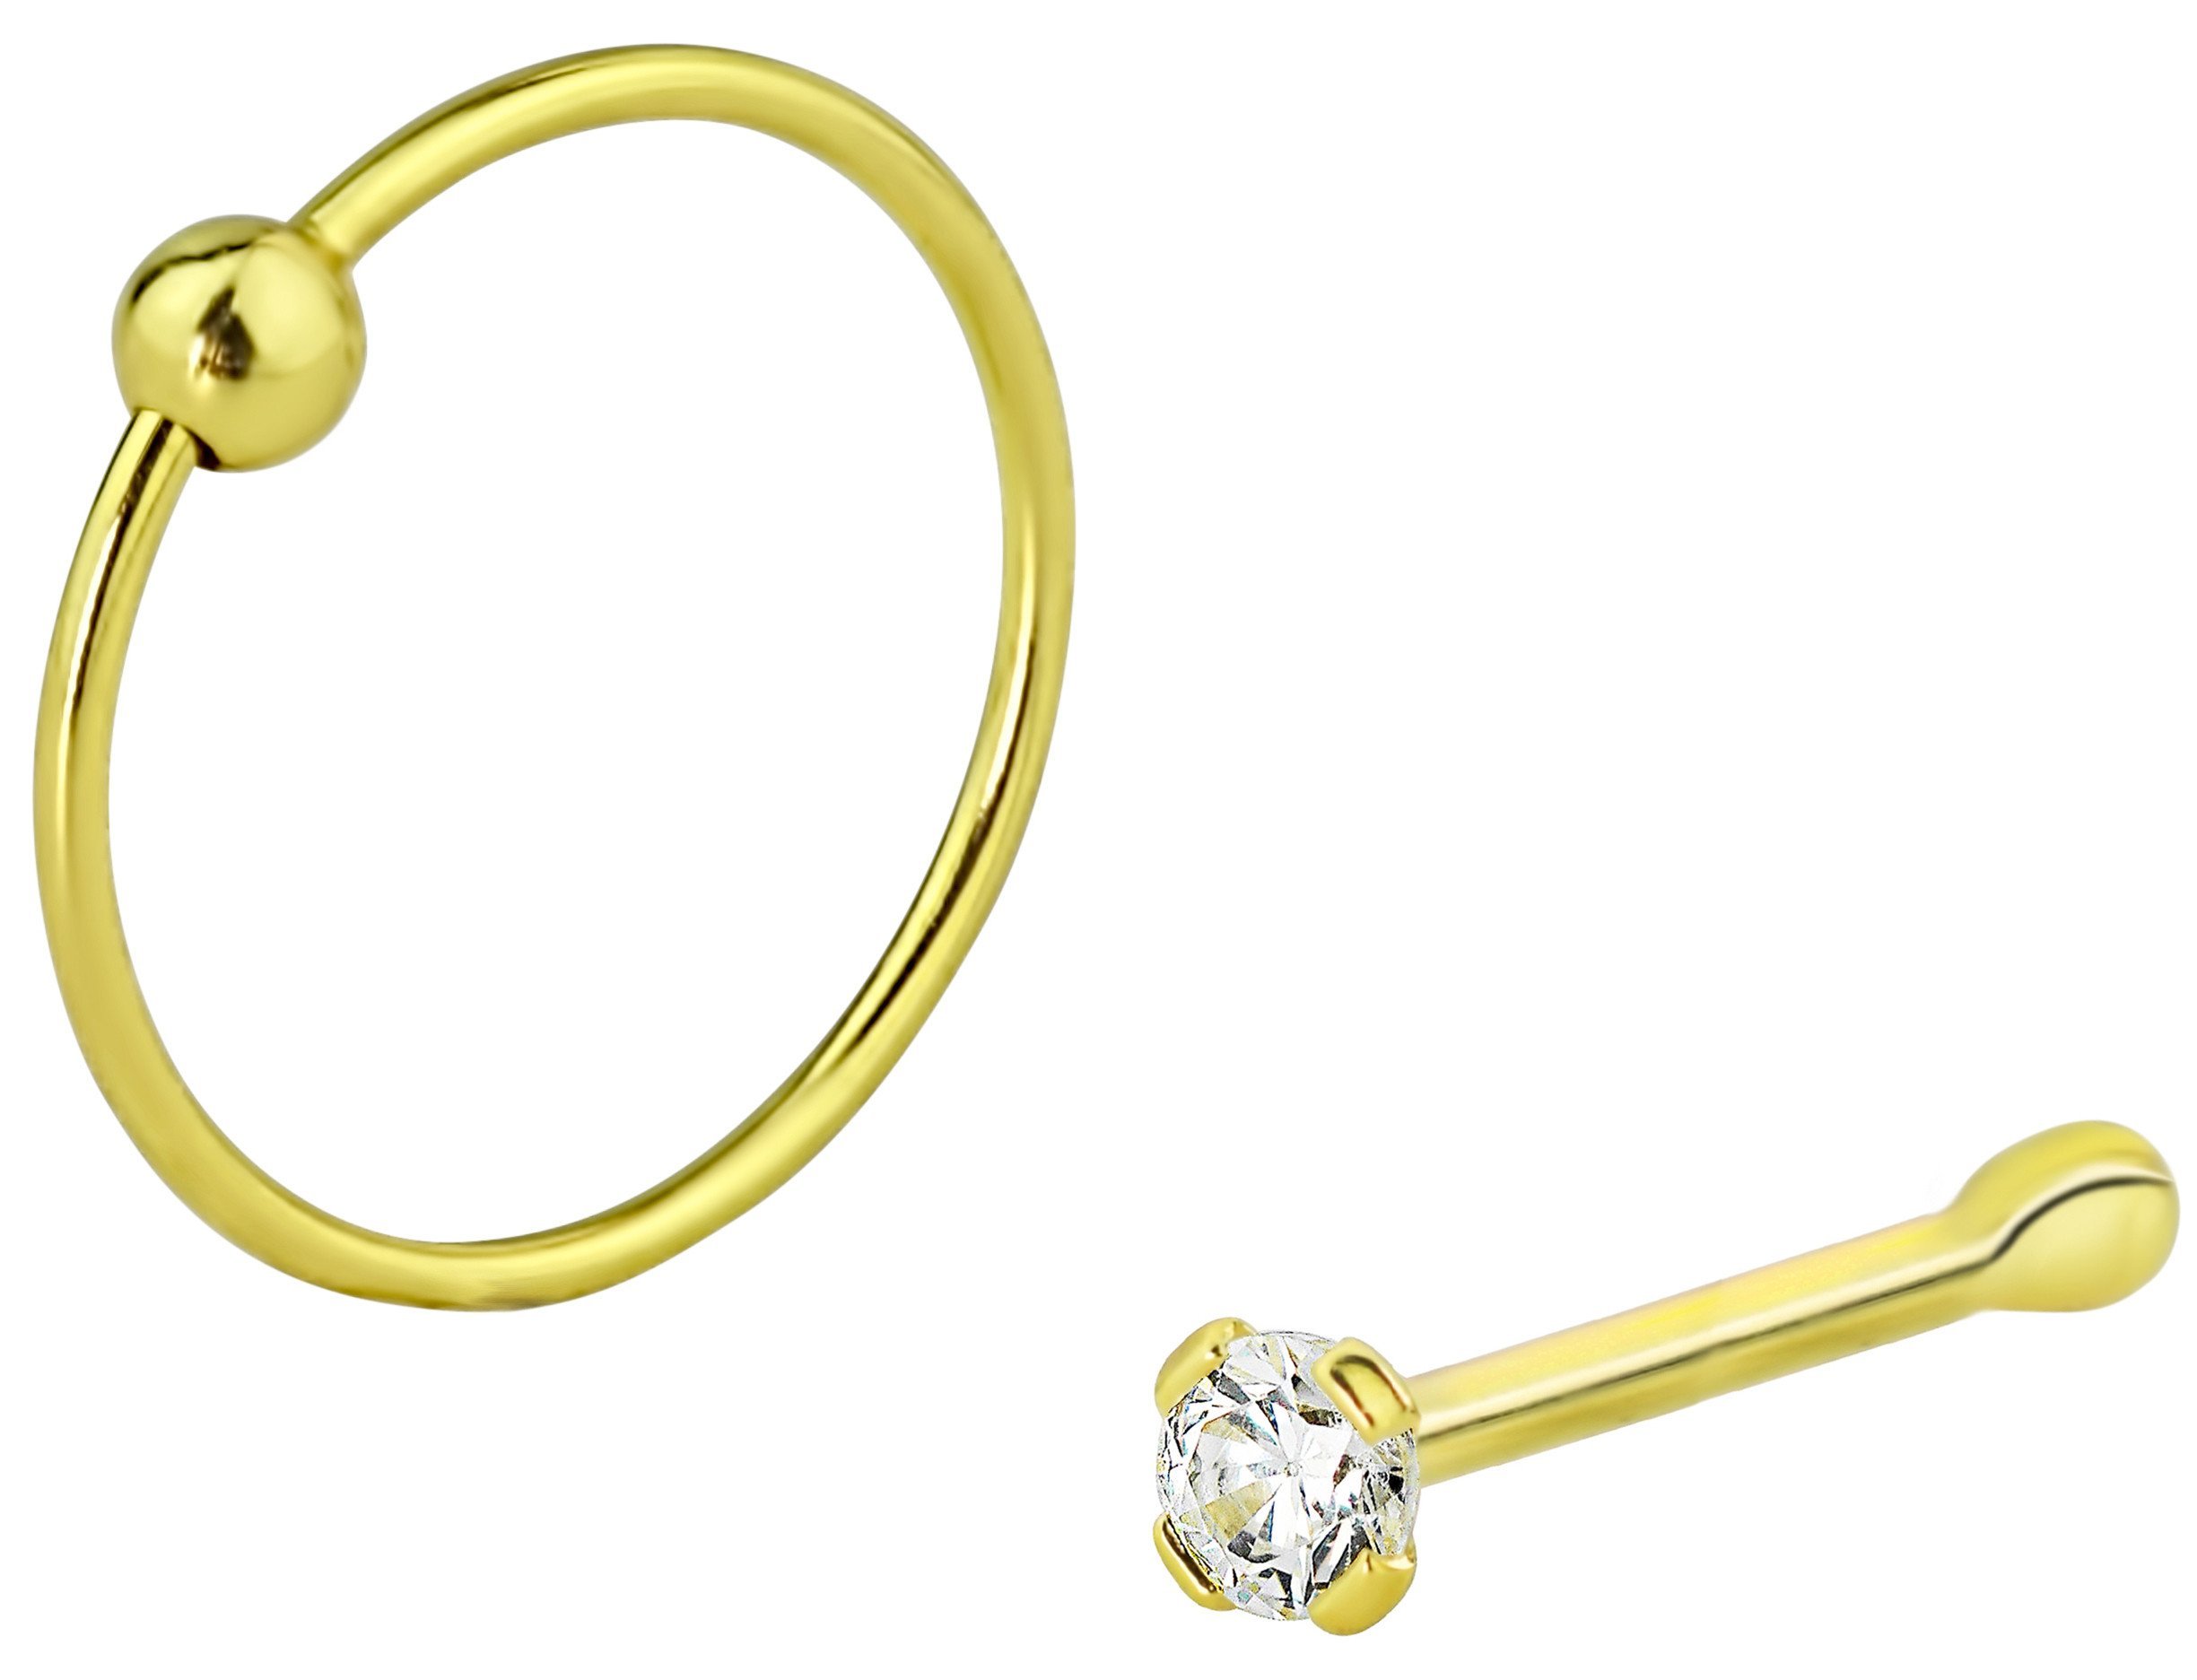 Set of 2 Styles Nose Rings: Sterling Silver Gold Plated 1.25mm CZ Stud and 9mm Nose Hoop